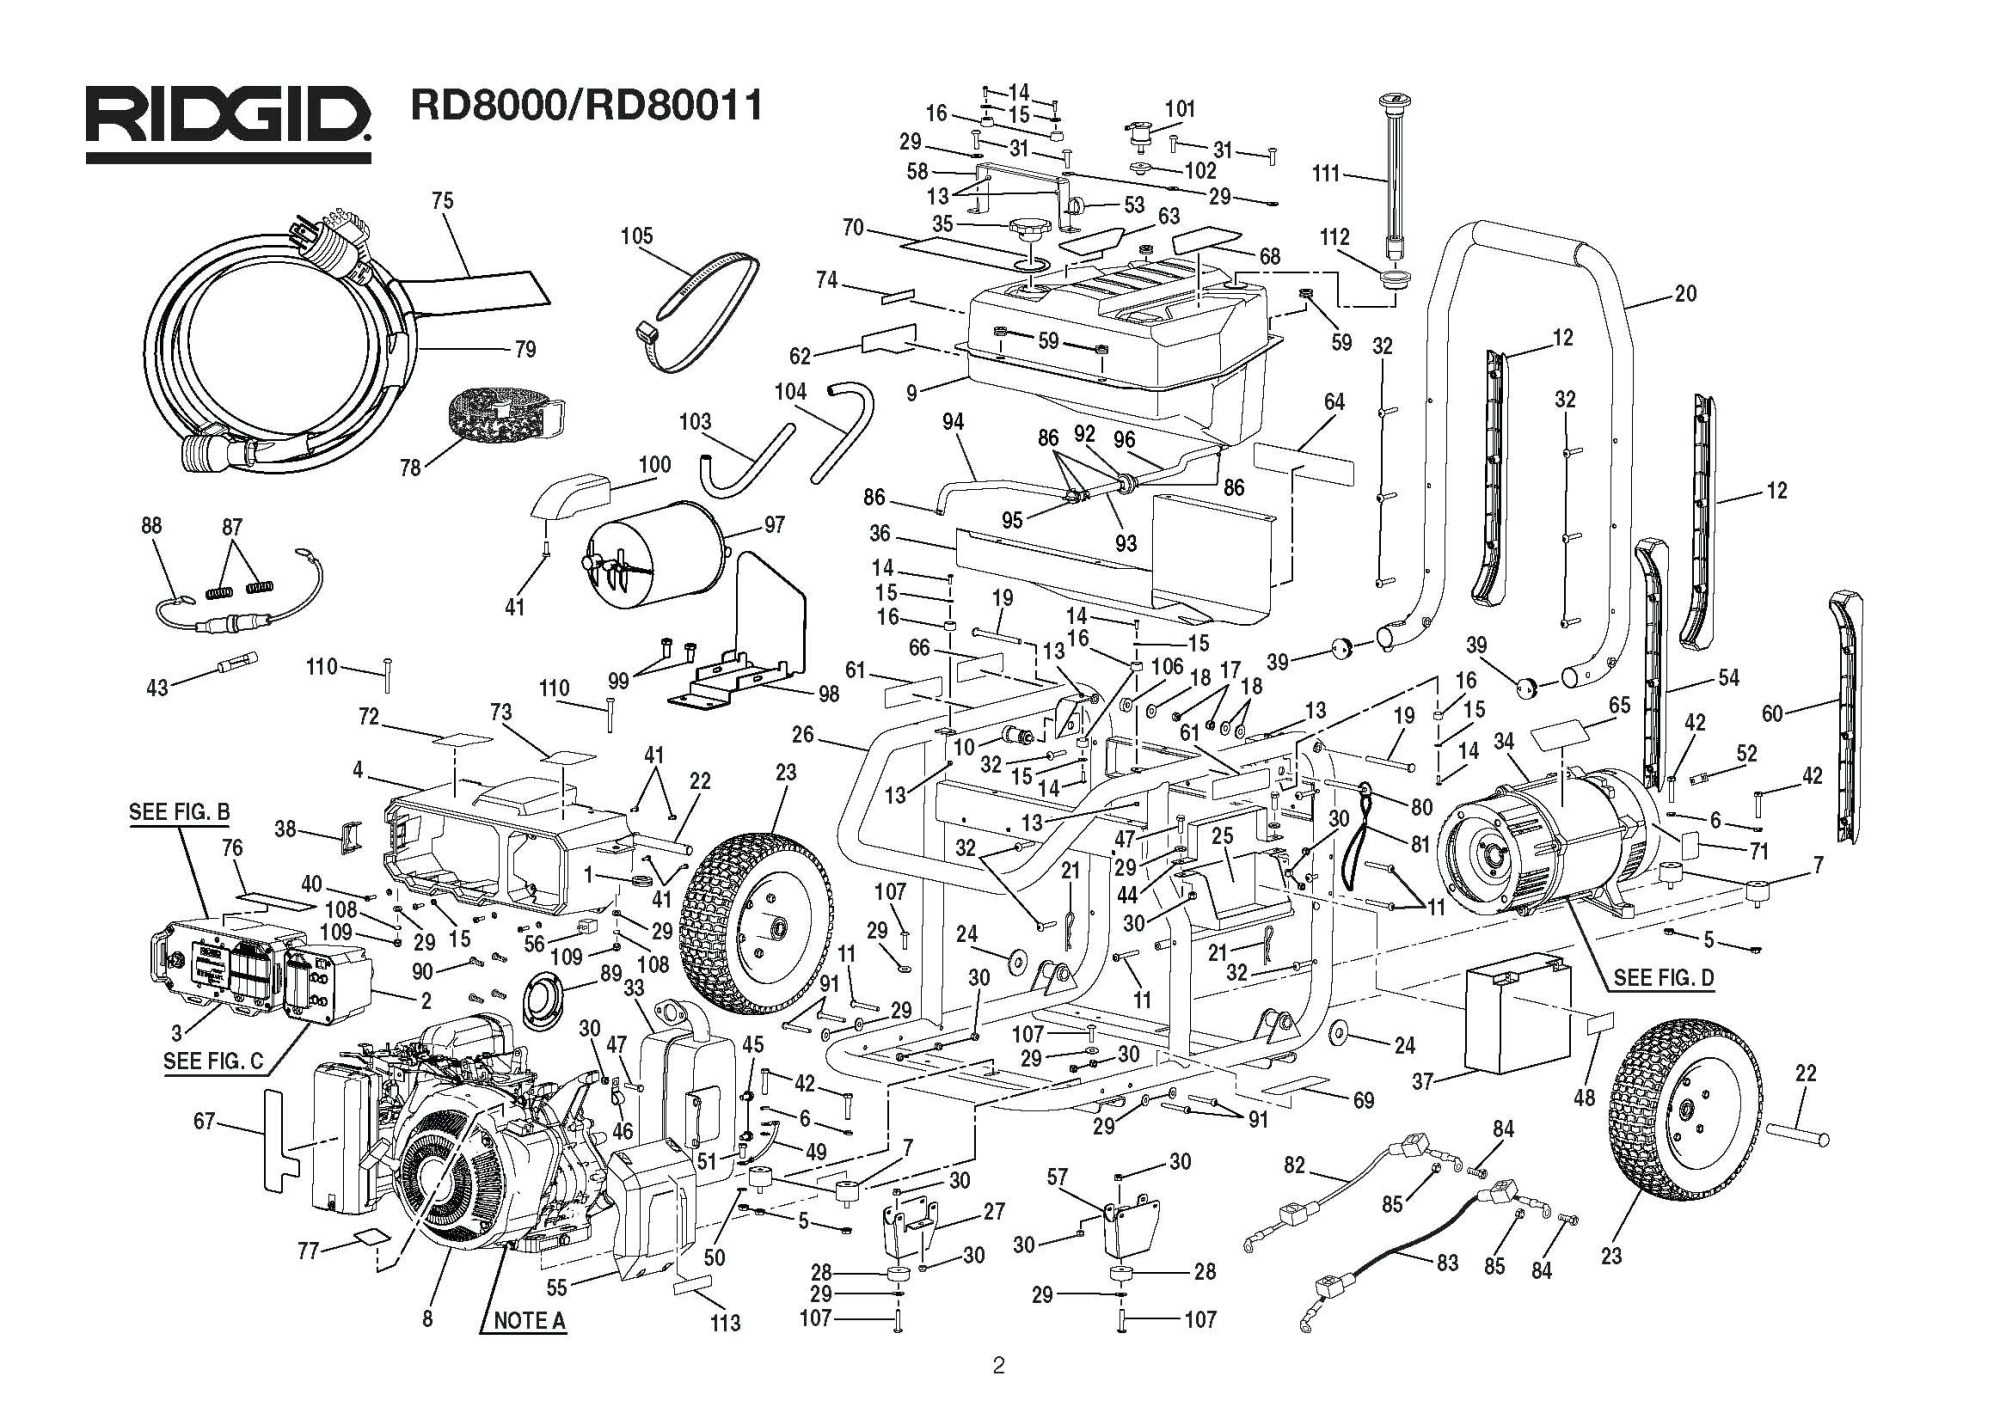 hight resolution of subaru forester engine diagram also 1996 subaru legacy outback 1996 subaru legacy outback engine diagrams